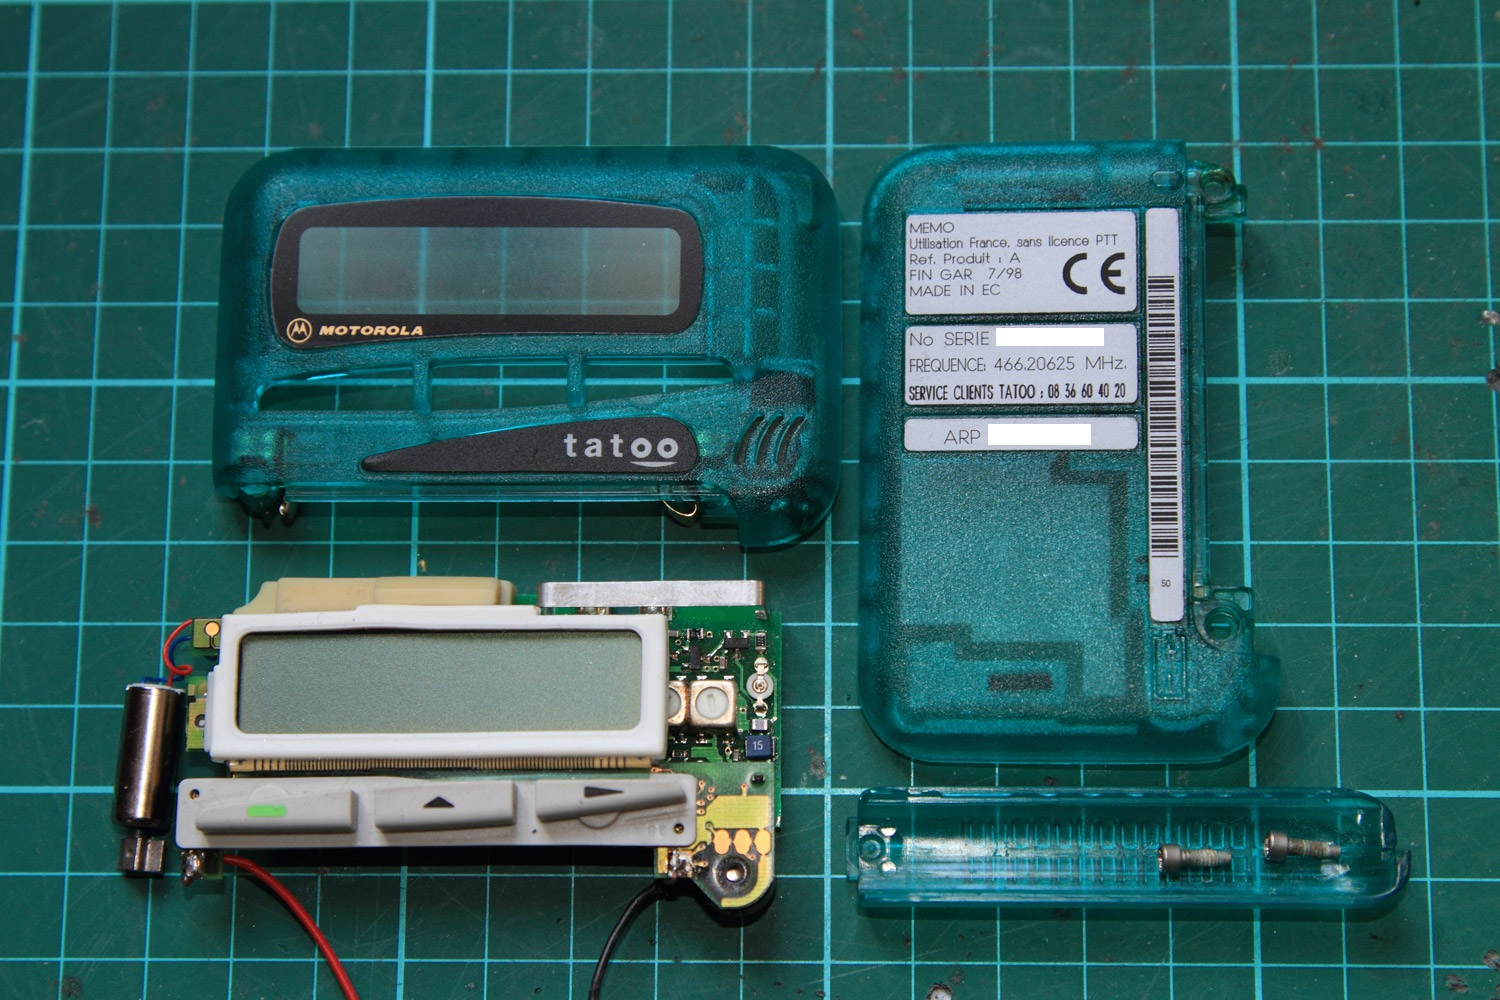 Retro engineering on a pager, Tatoo Hack